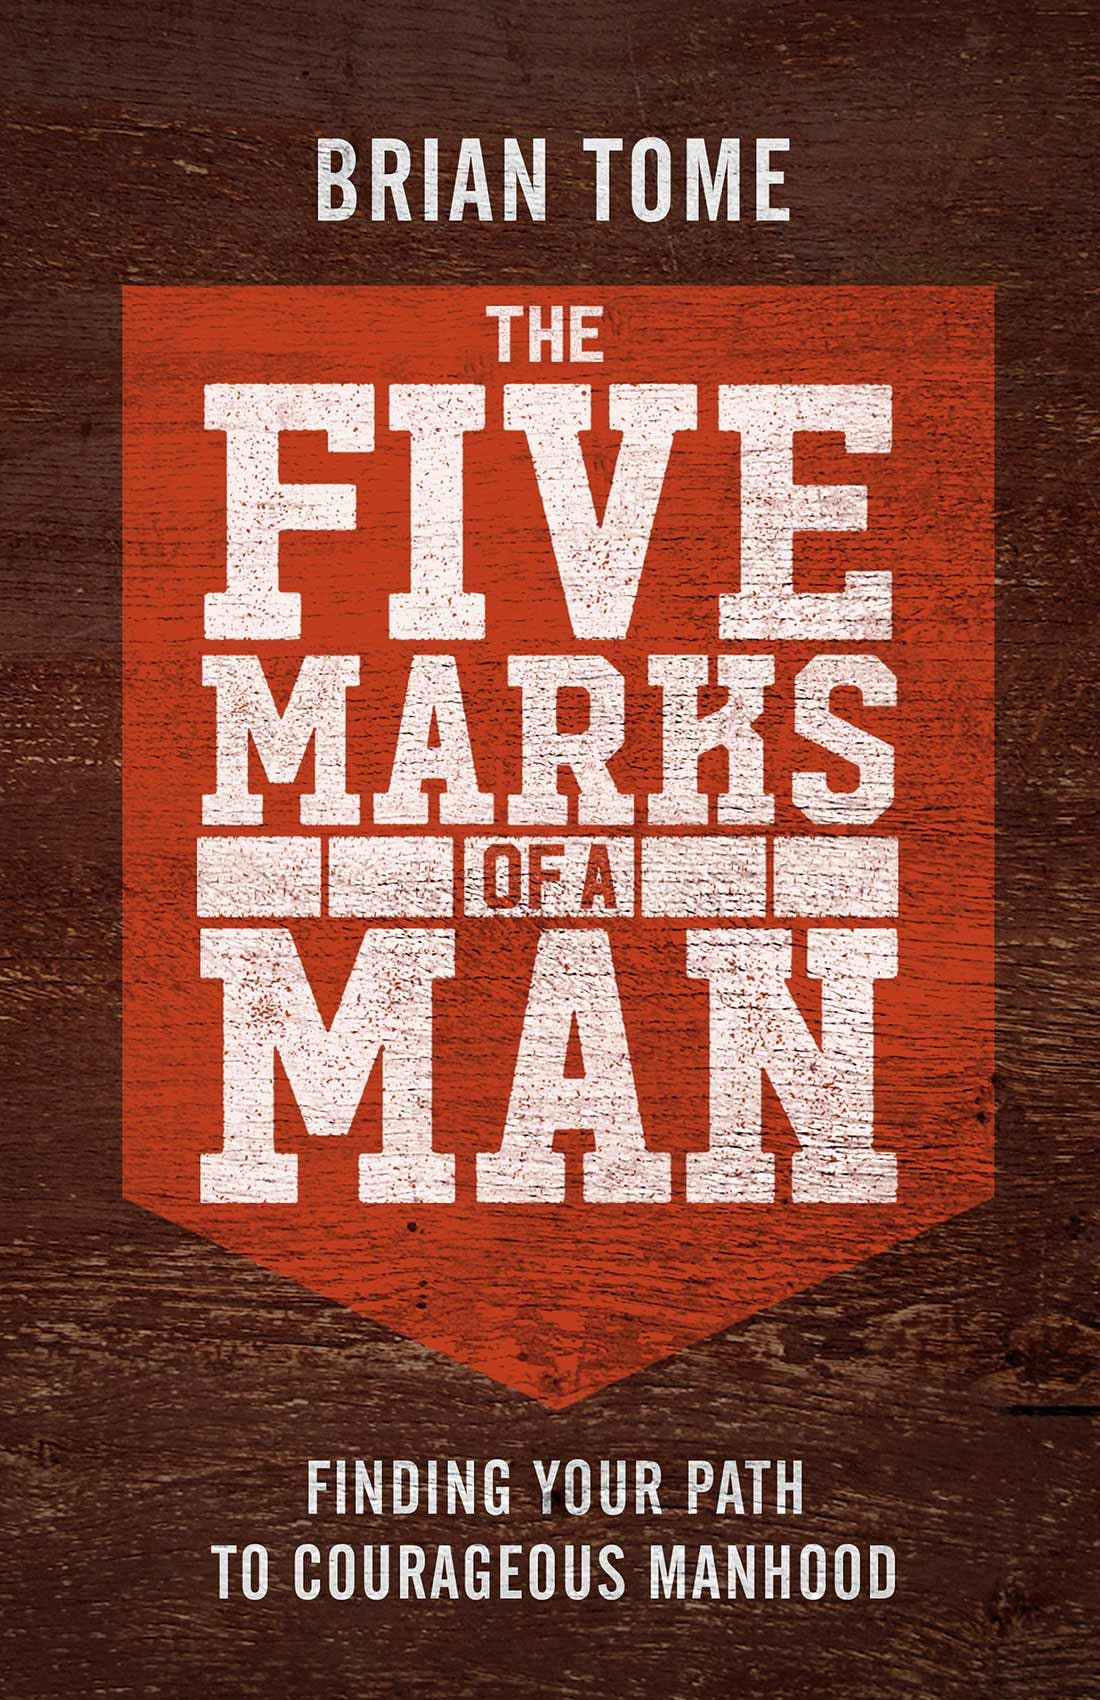 Brian Tome five marks of a man book cover